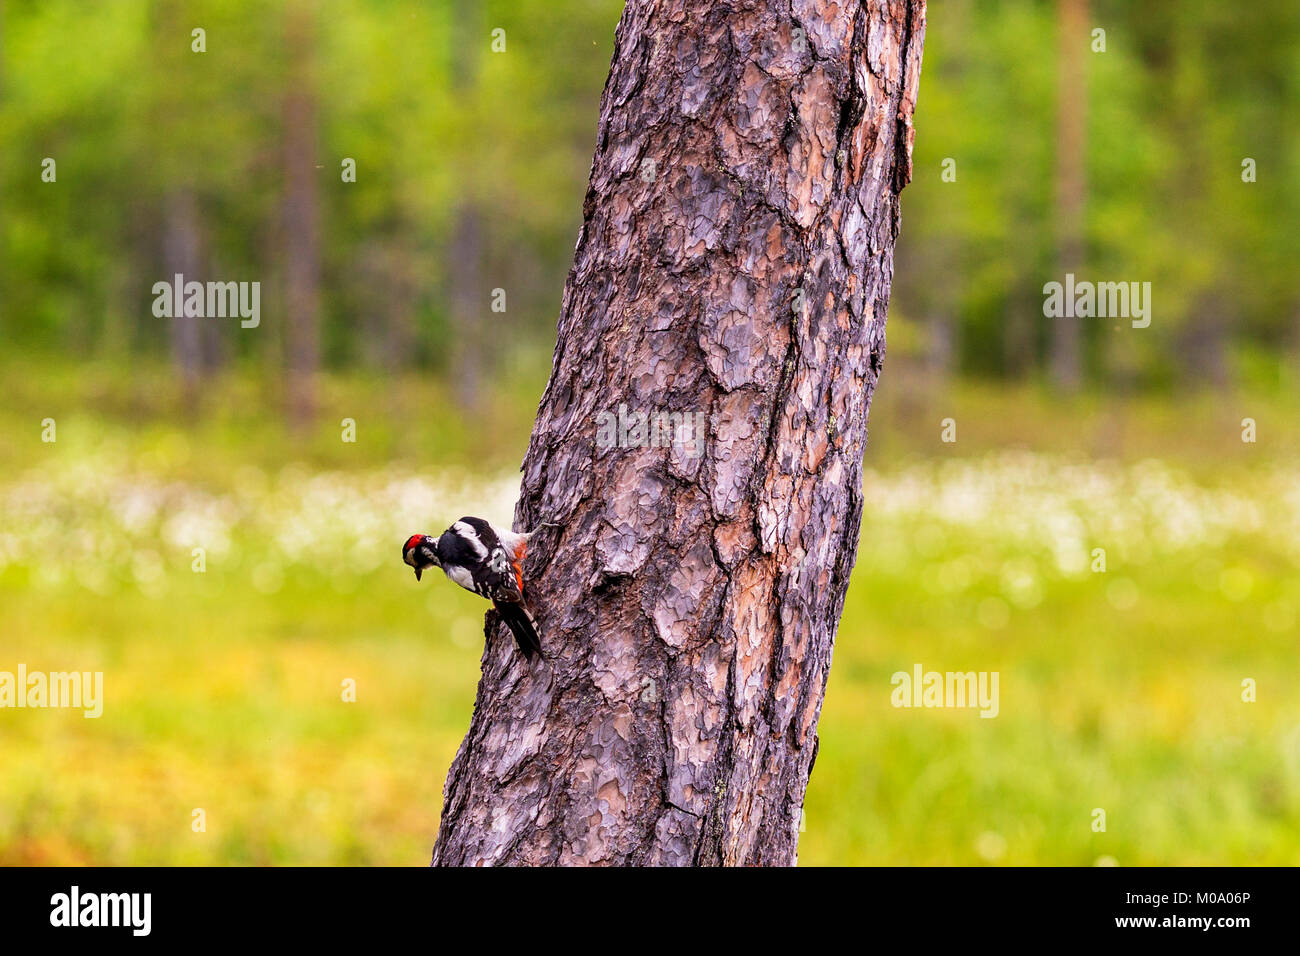 A woodpecker at a tree trunk. - Stock Image